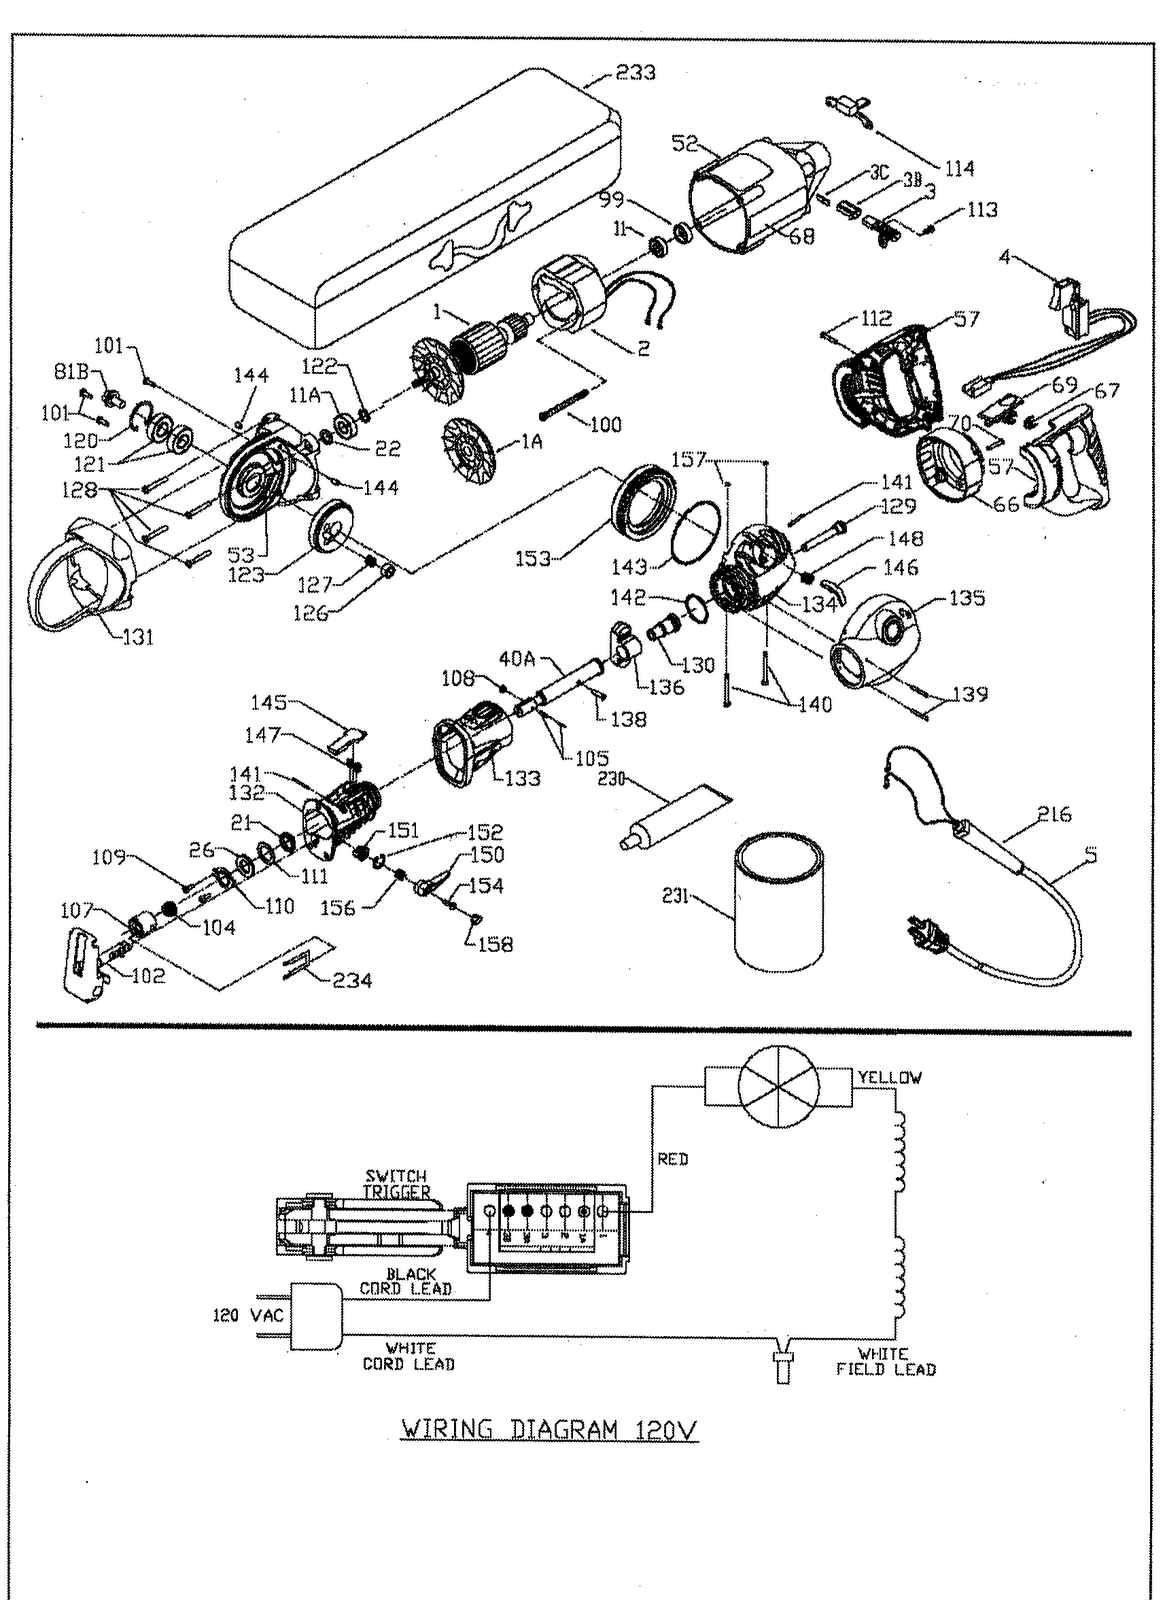 Bosch Sabre Saw Parts. Bosch. Tractor Engine And Wiring